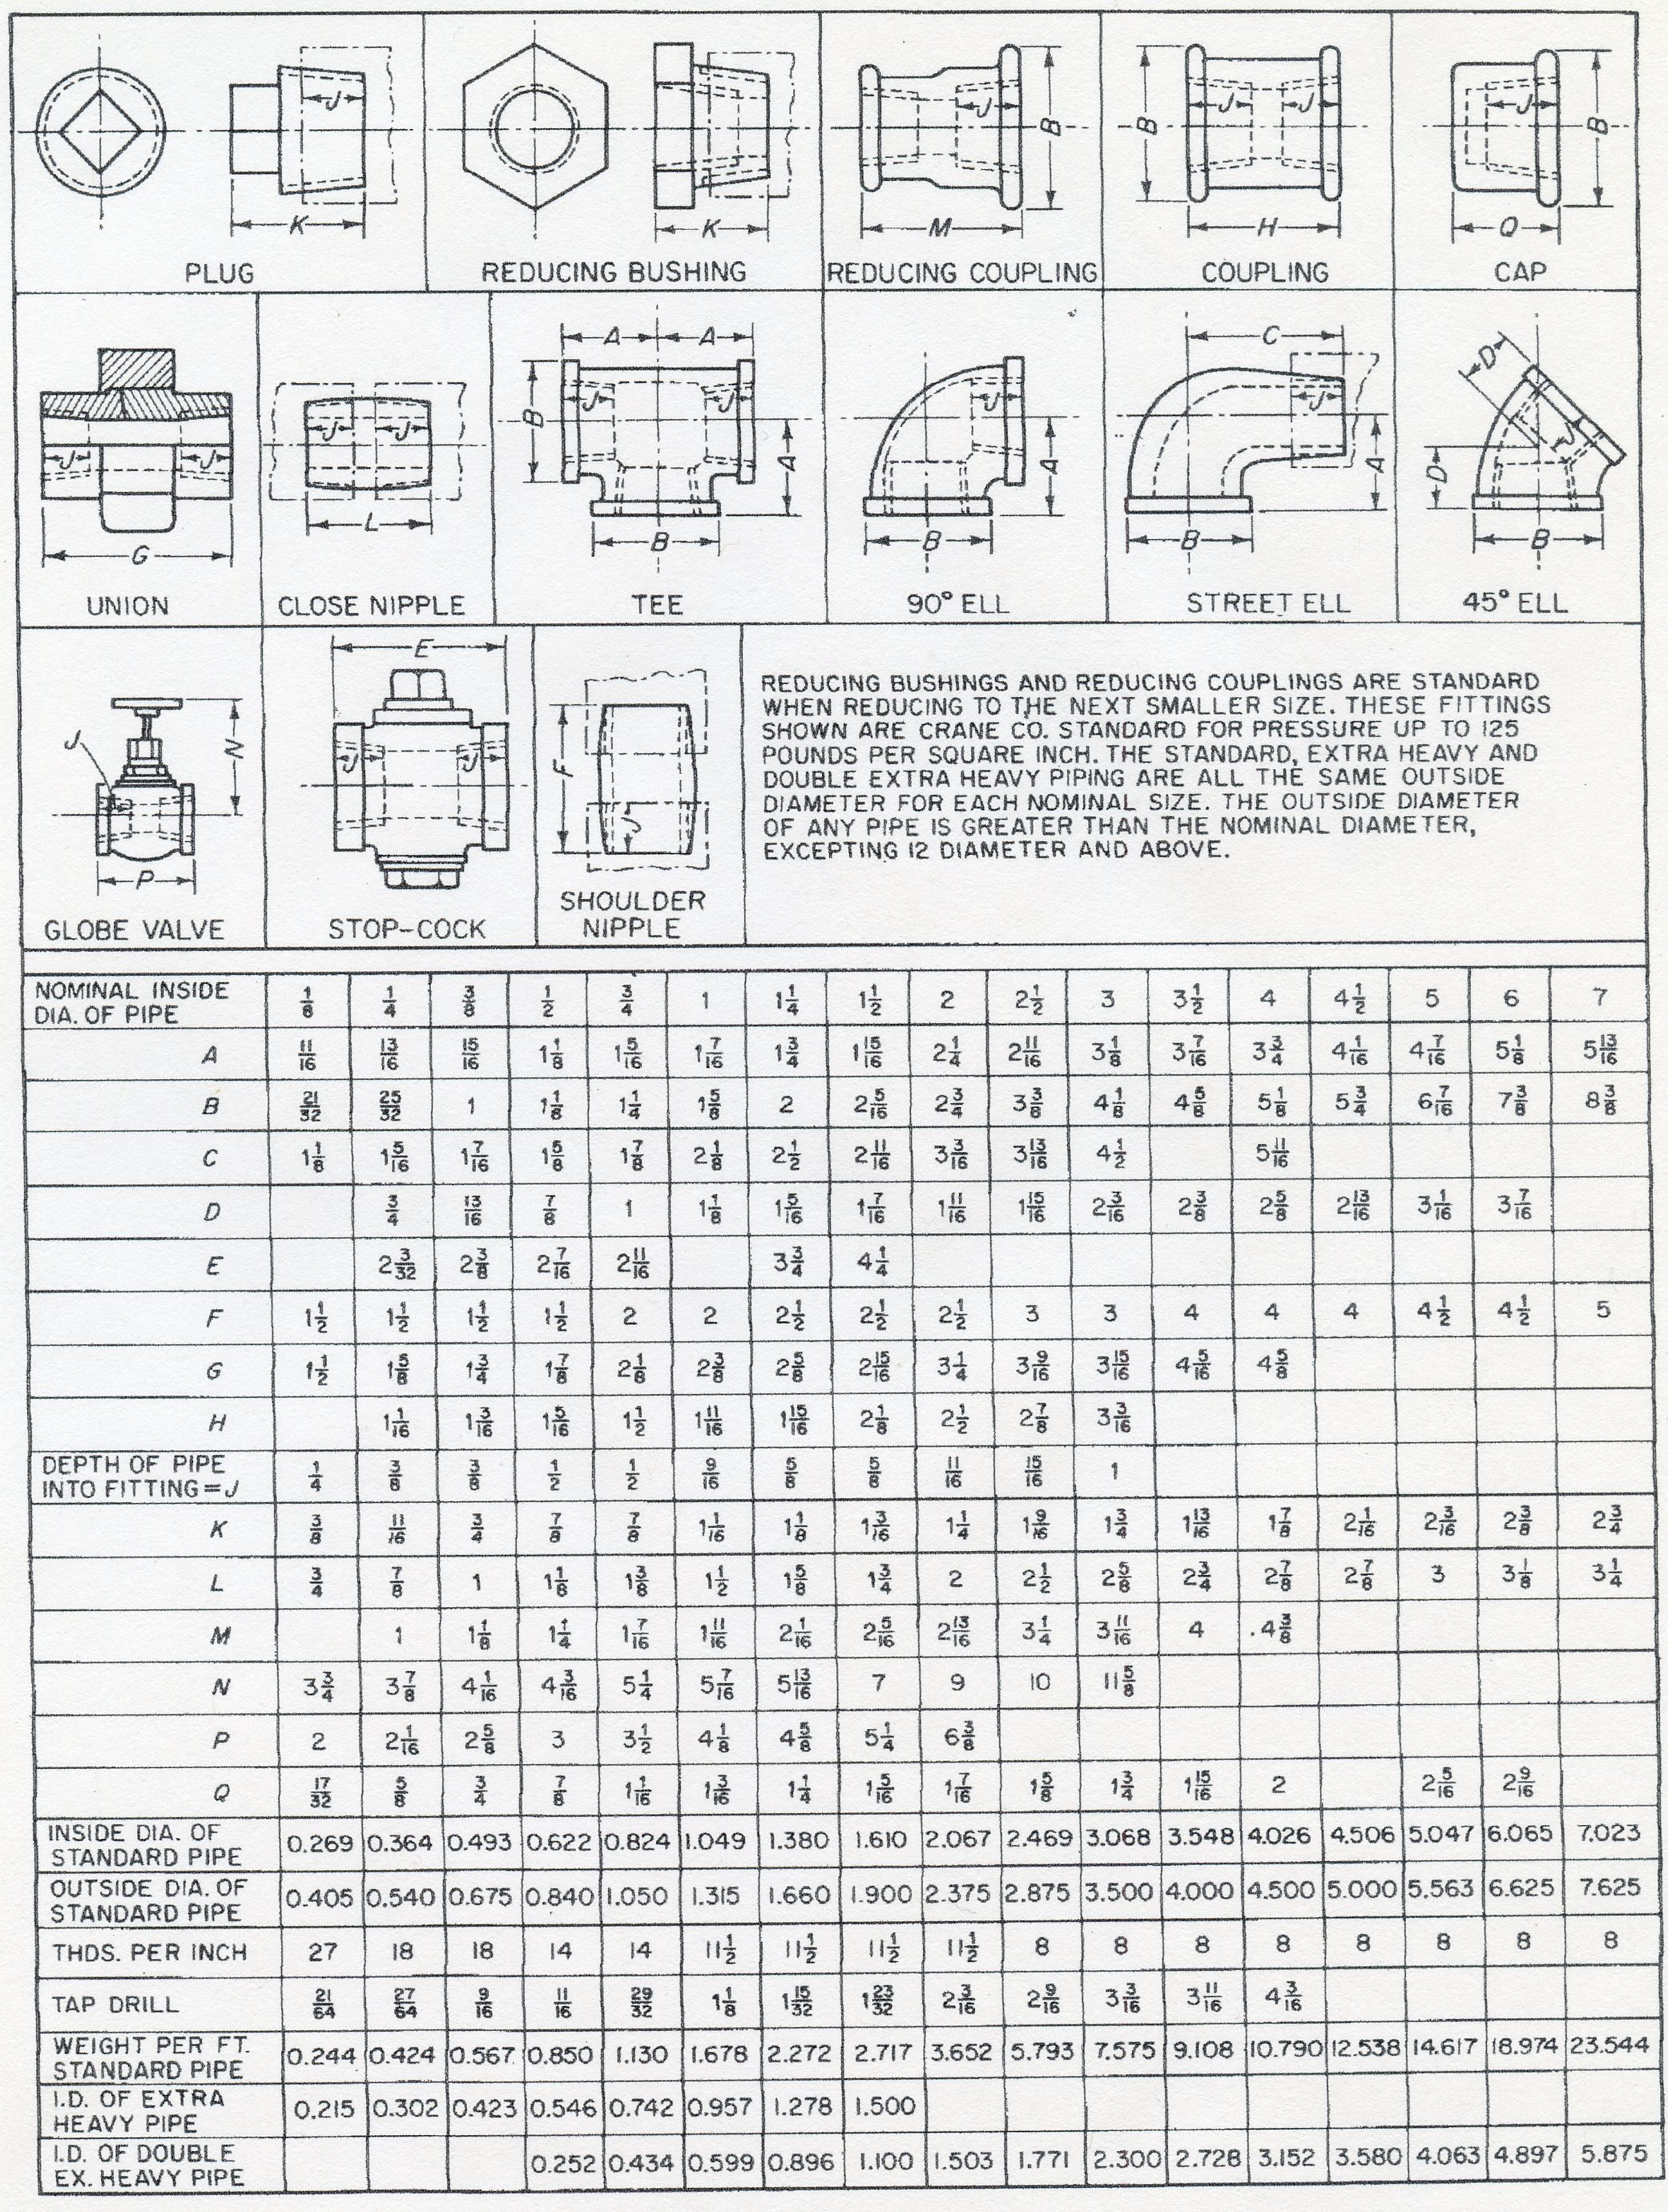 Pipe coupling dimensions chart plumbing contractor